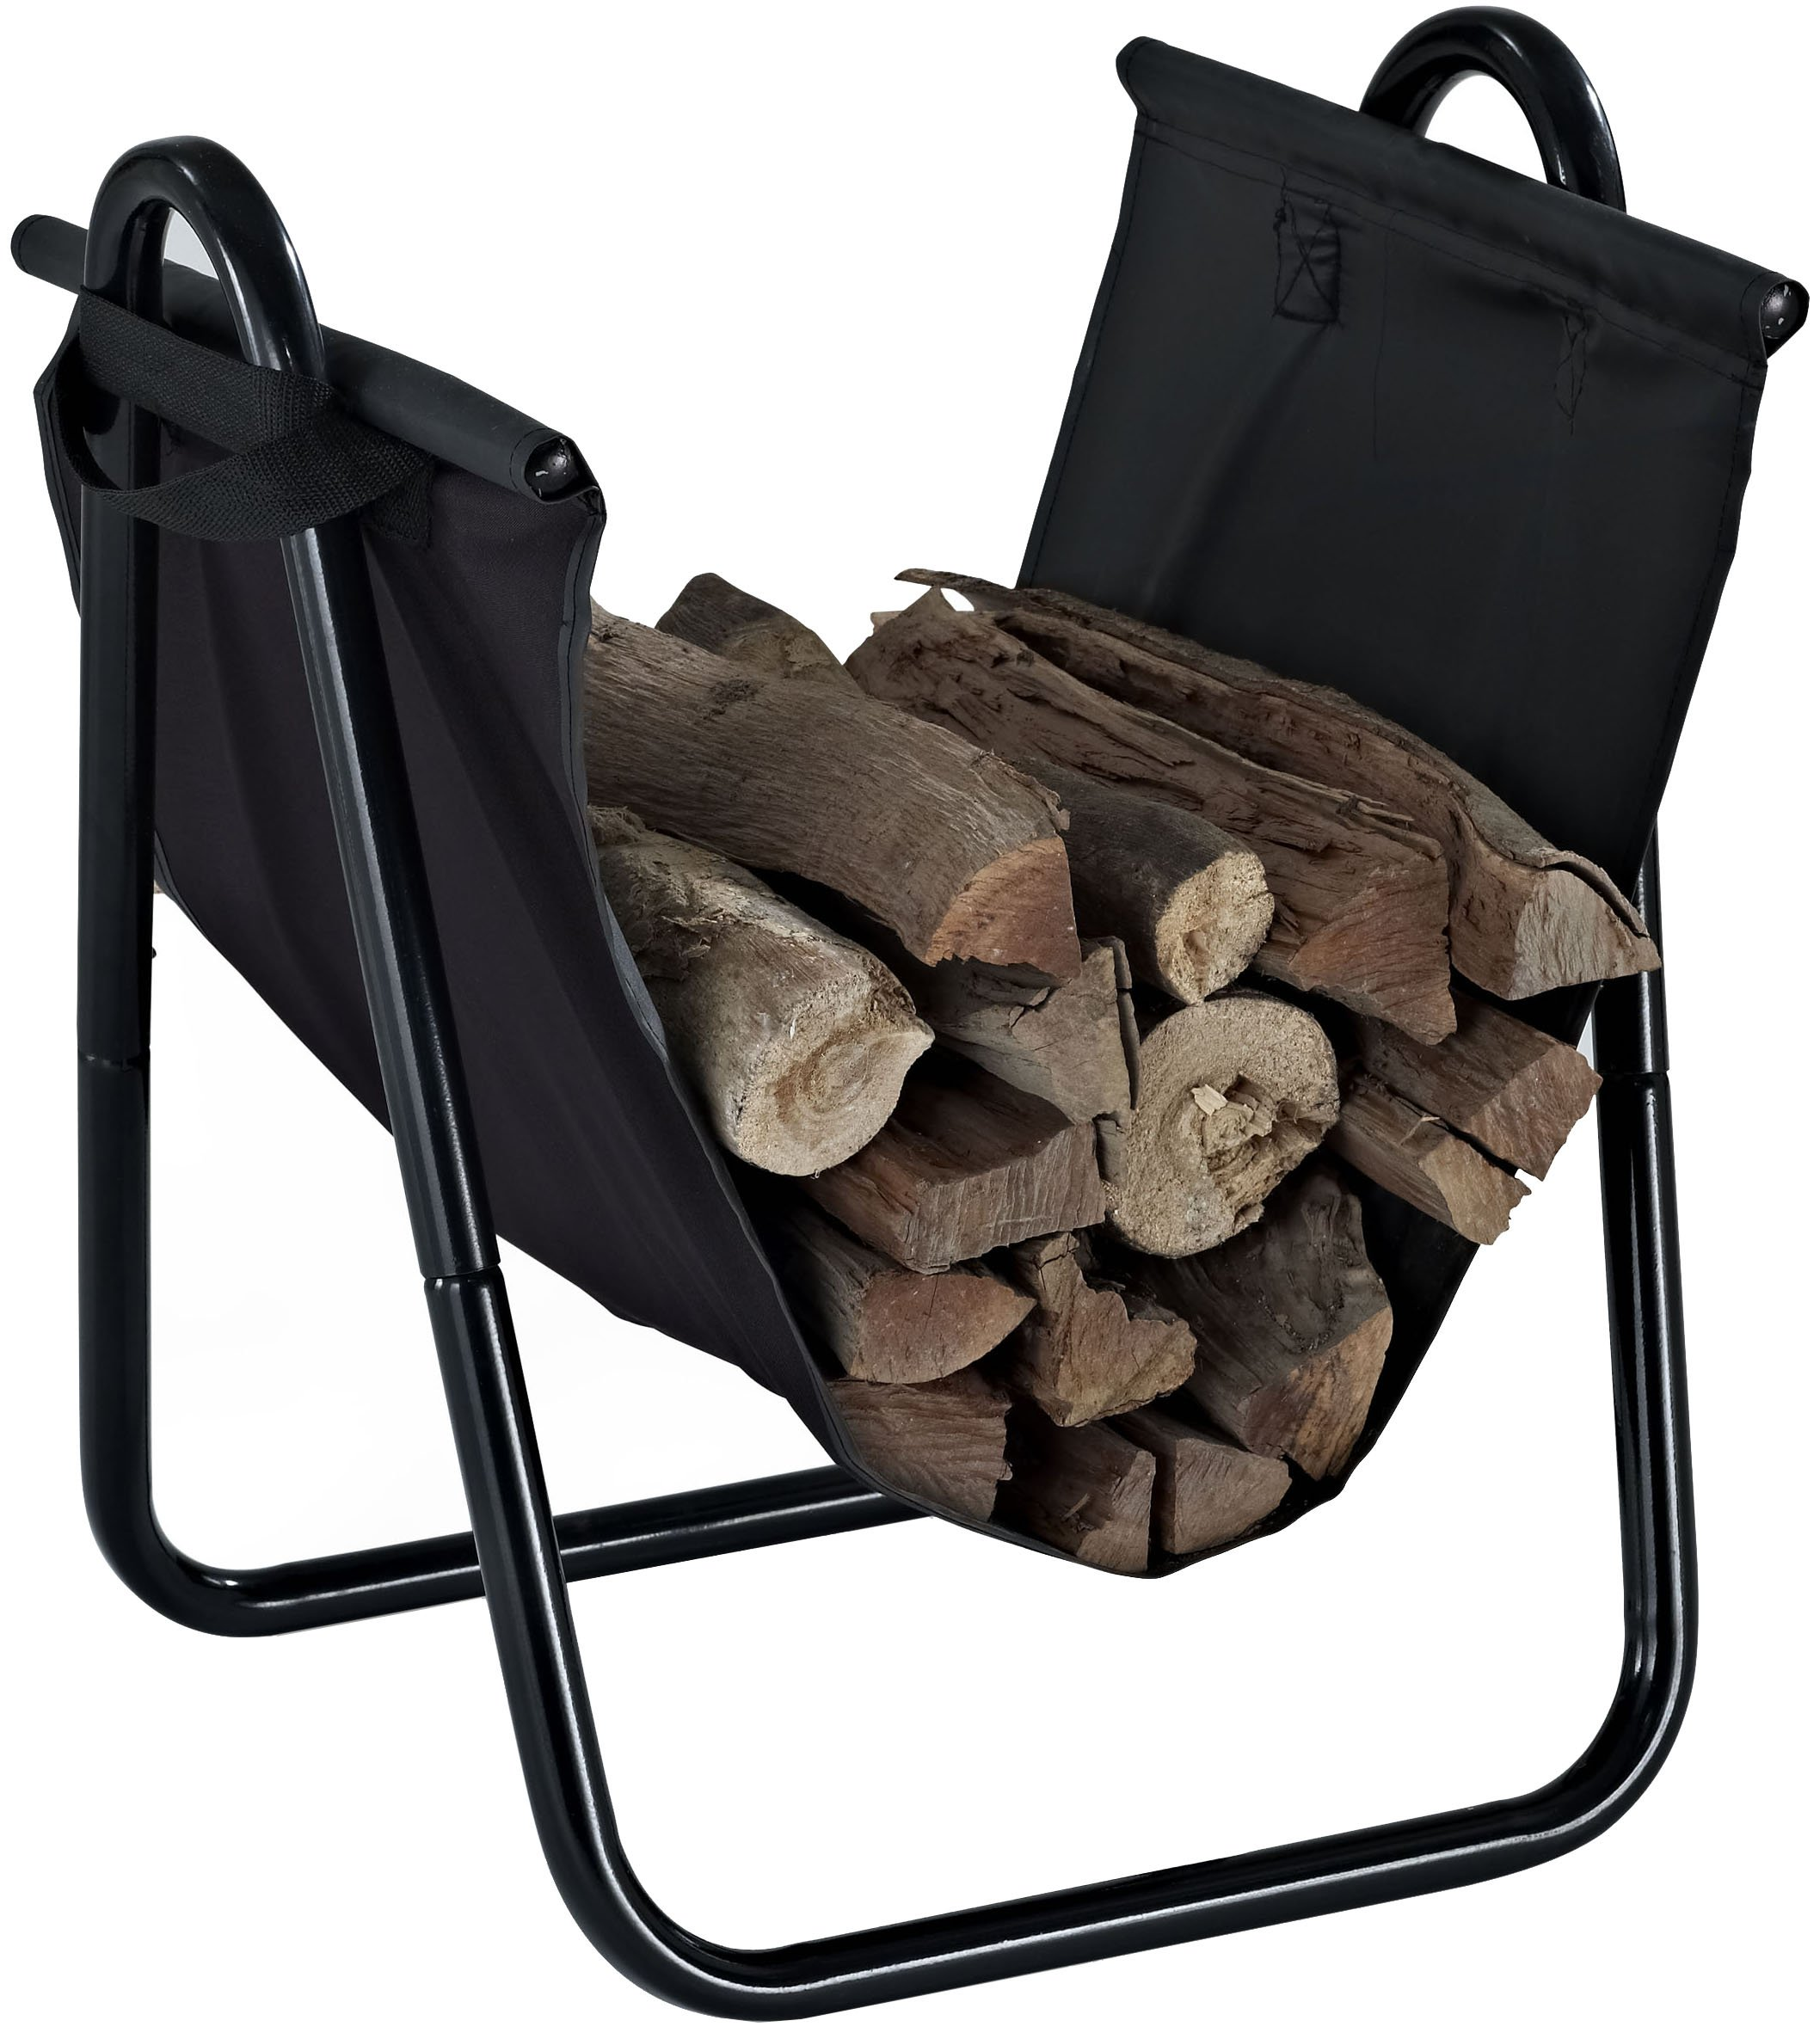 Crosley Furniture Logan Firewood Storage Rack and Carrier - Black by Crosley Furniture (Image #1)